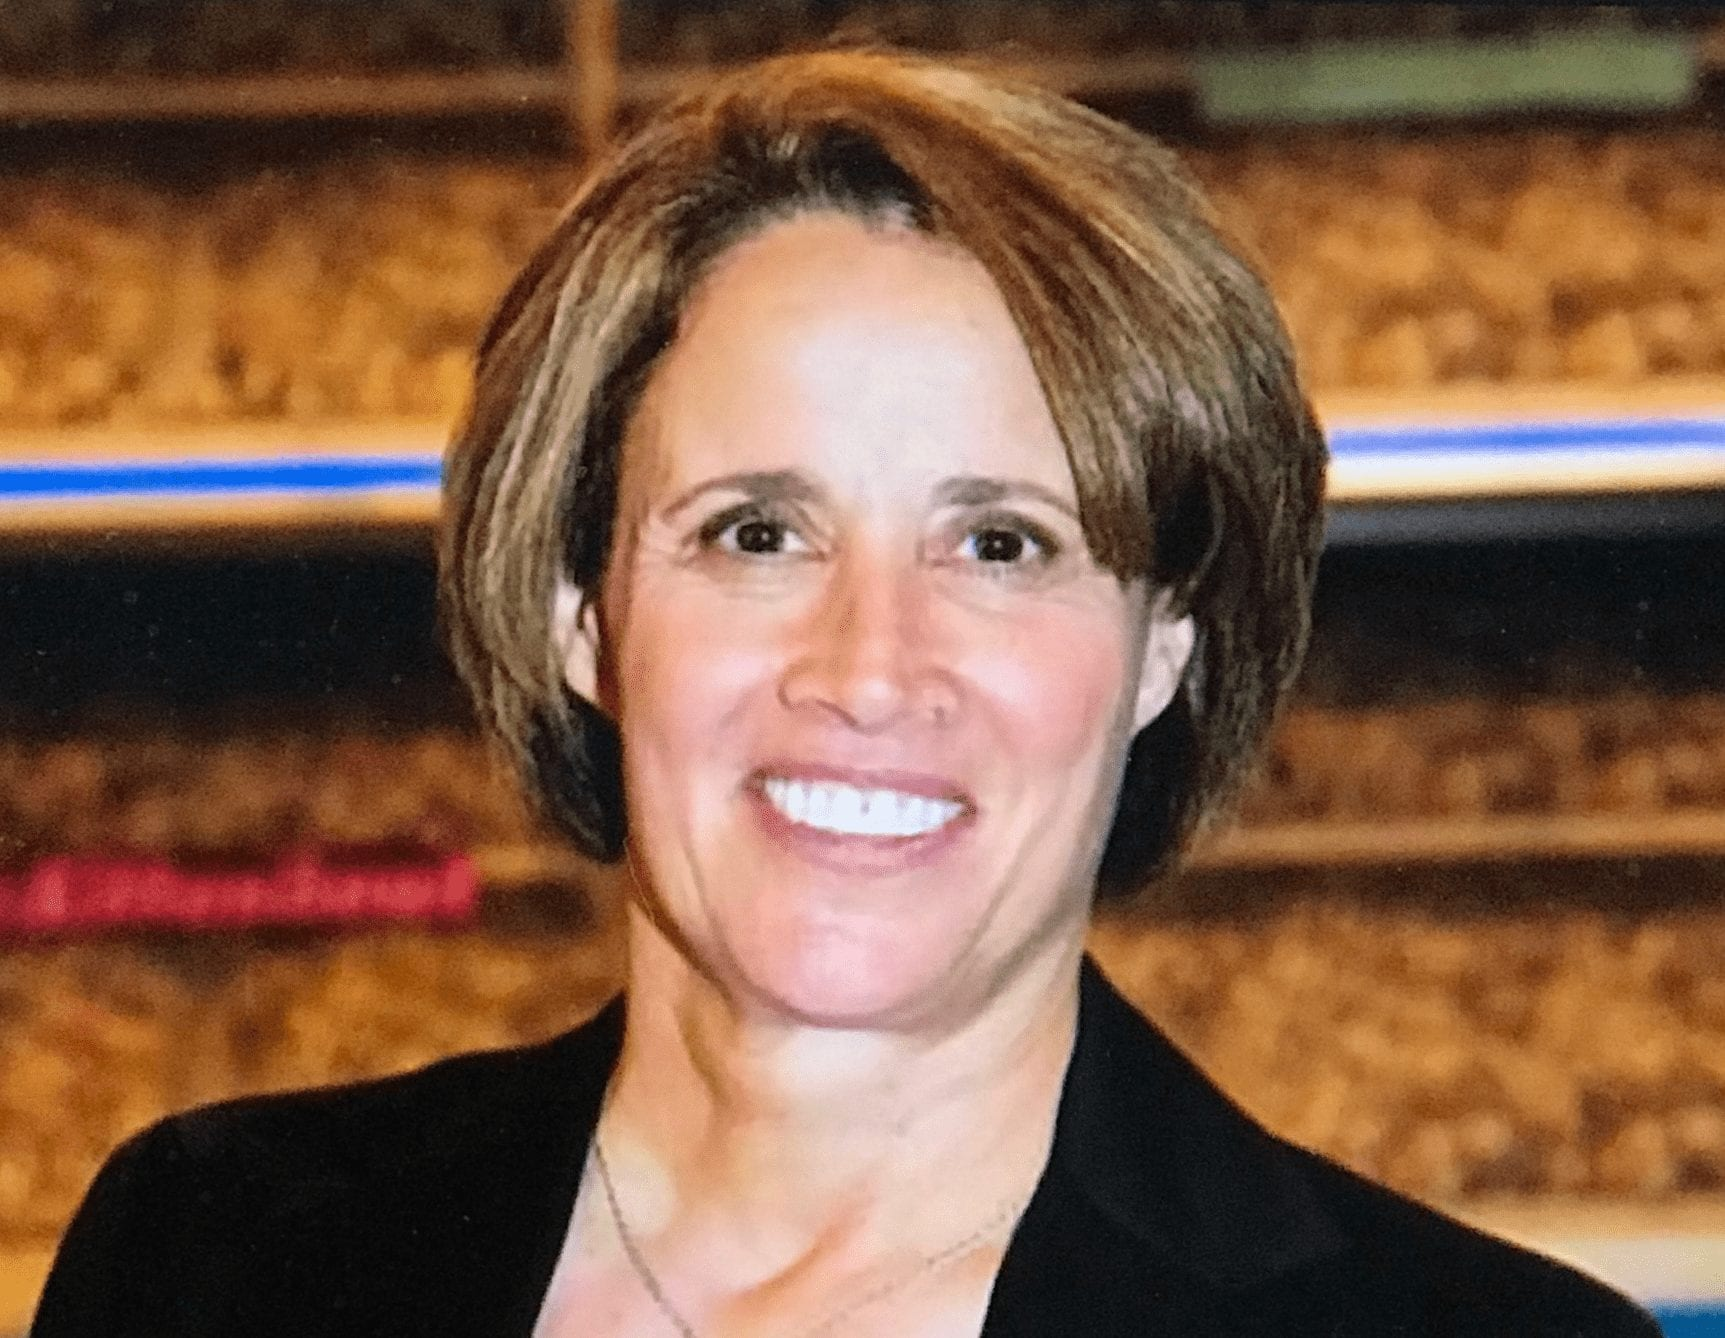 Case Study: Behind the Scenes with HBO's Mary Carillo